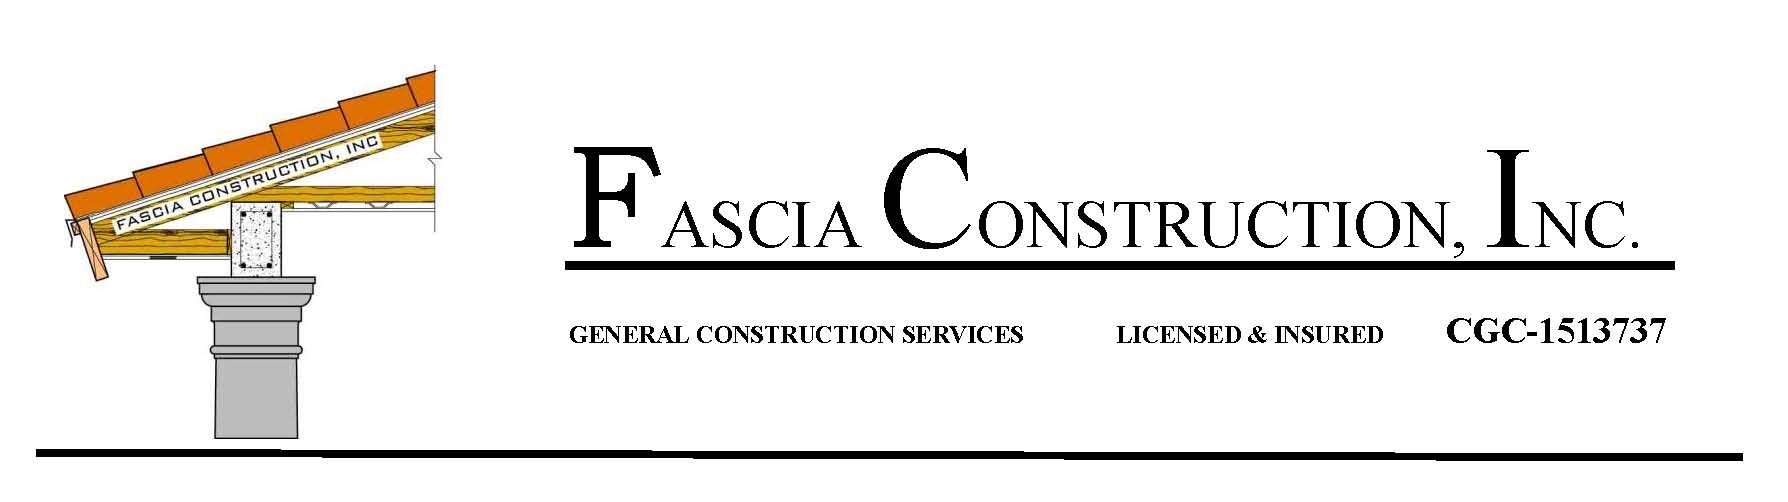 Fascia construction letter head 2012 header only fascia fascia construction letter head 2012 header only fascia construction inc thecheapjerseys Choice Image